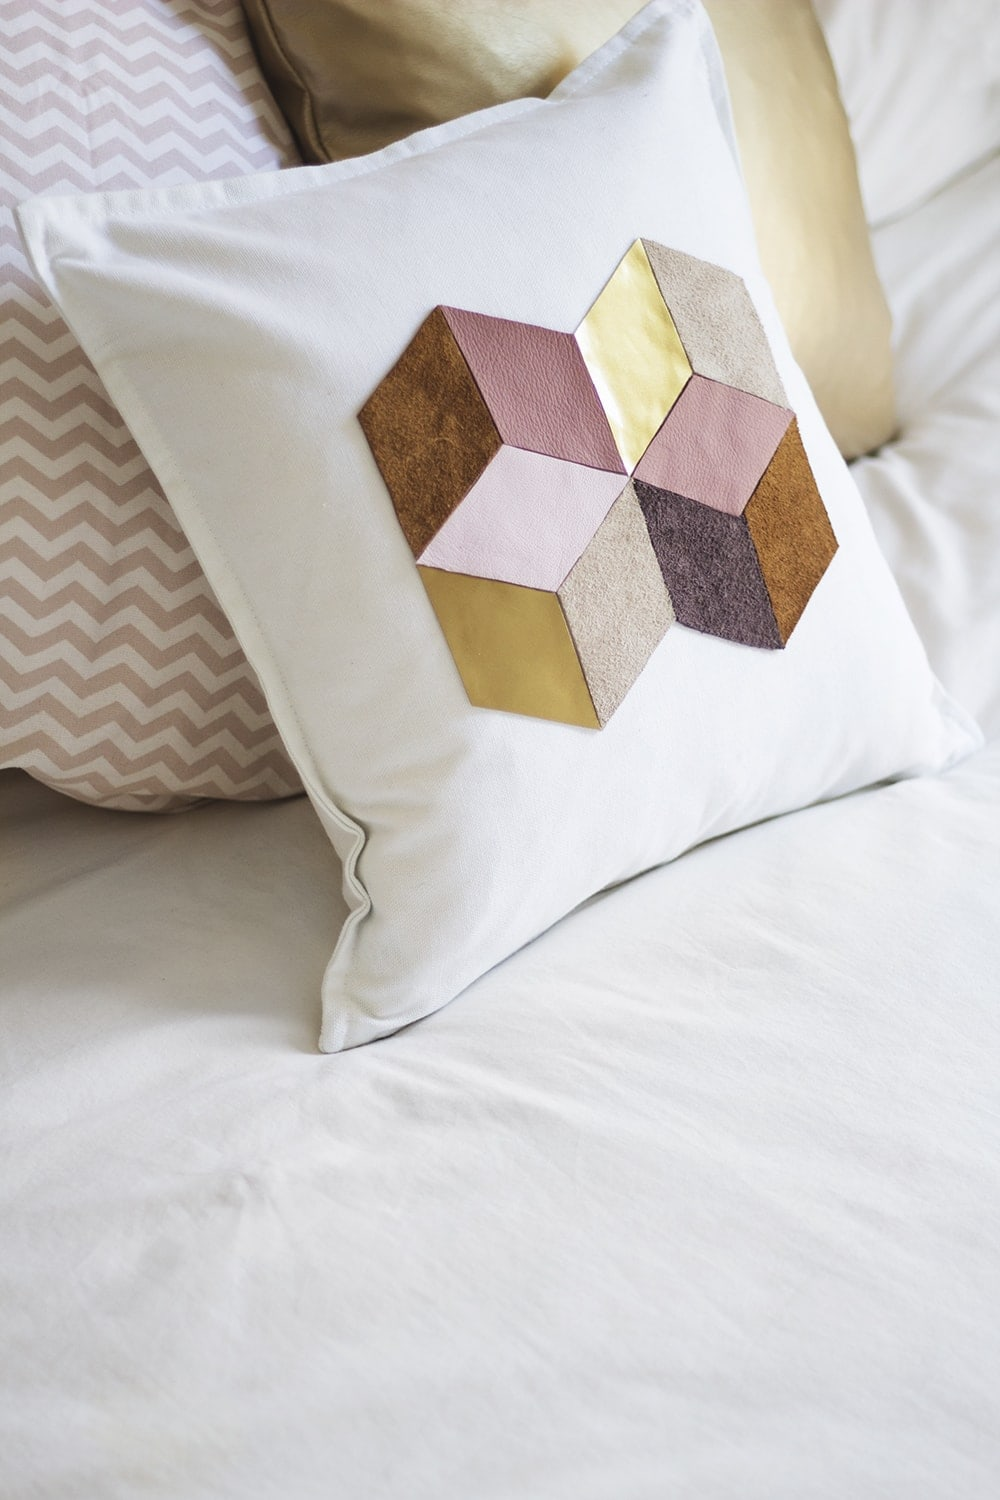 DIY geometric cushion 3